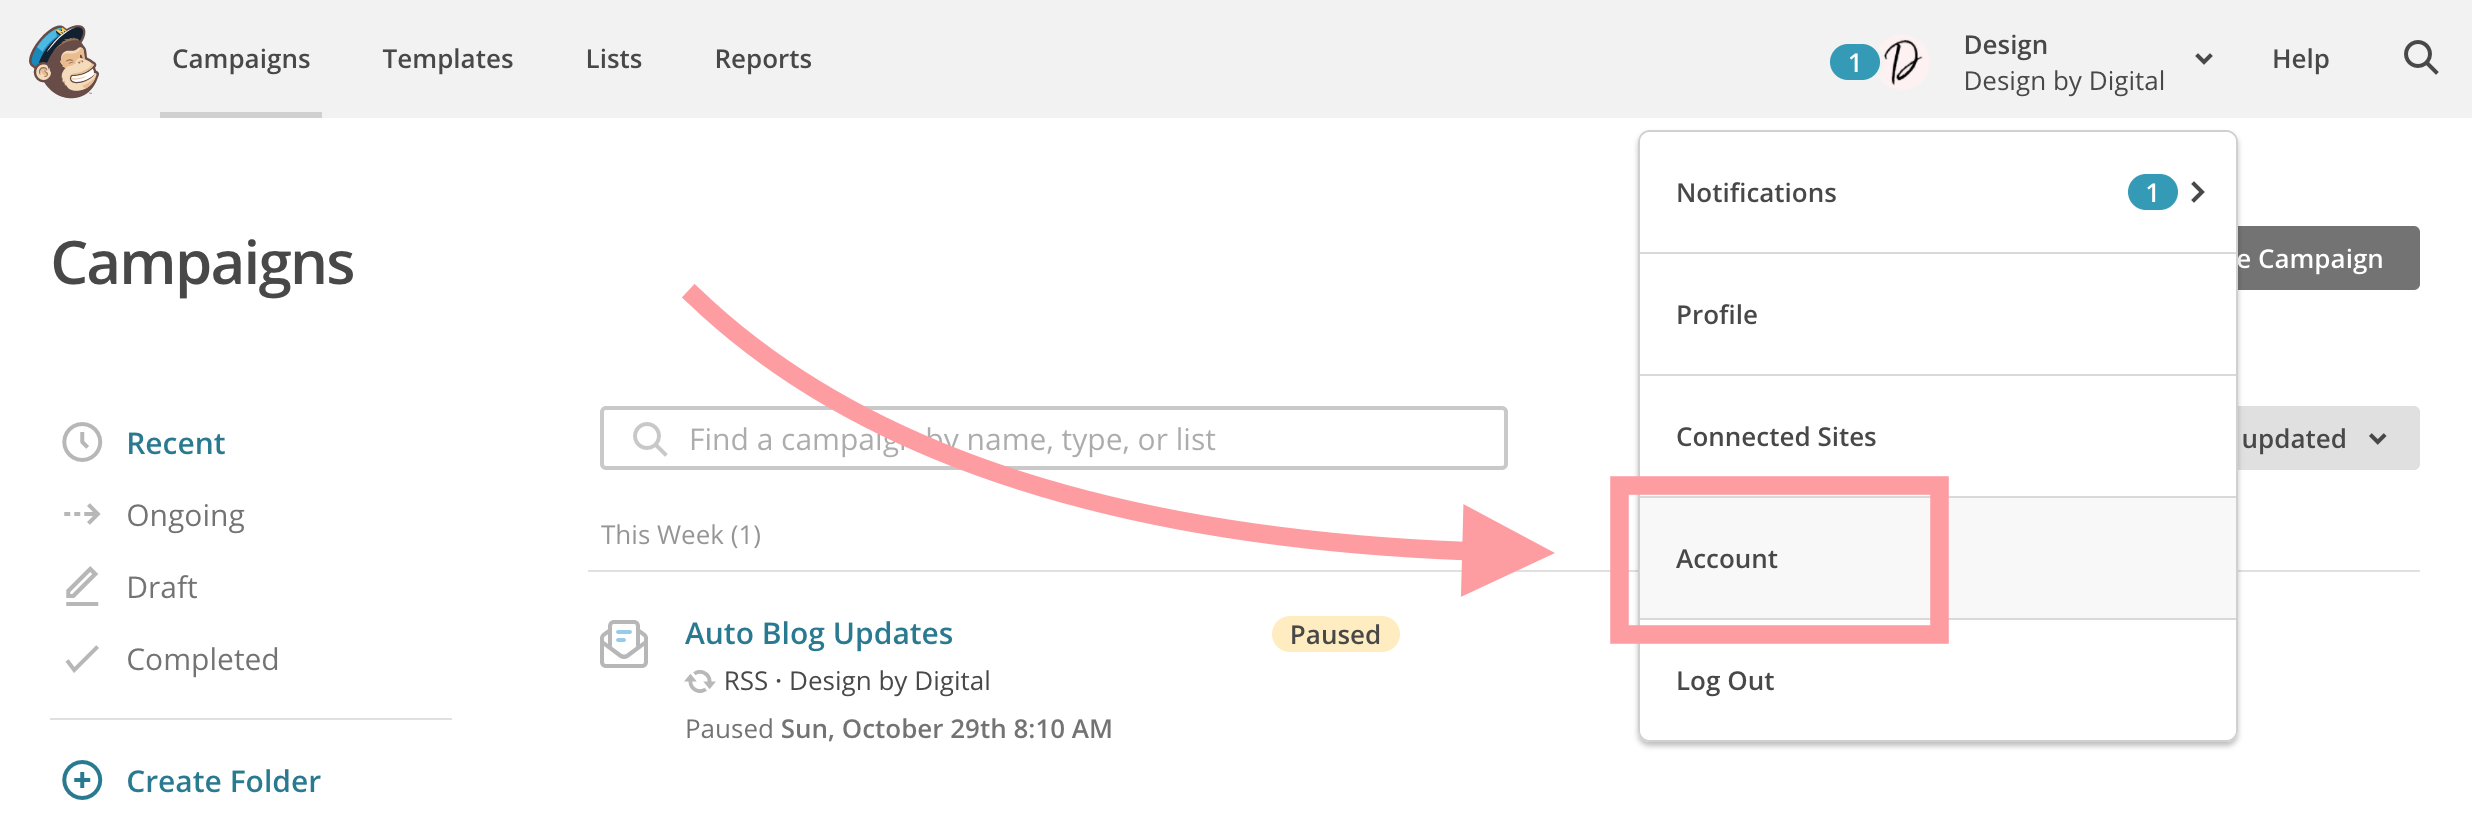 Account Settings In Mailchimp